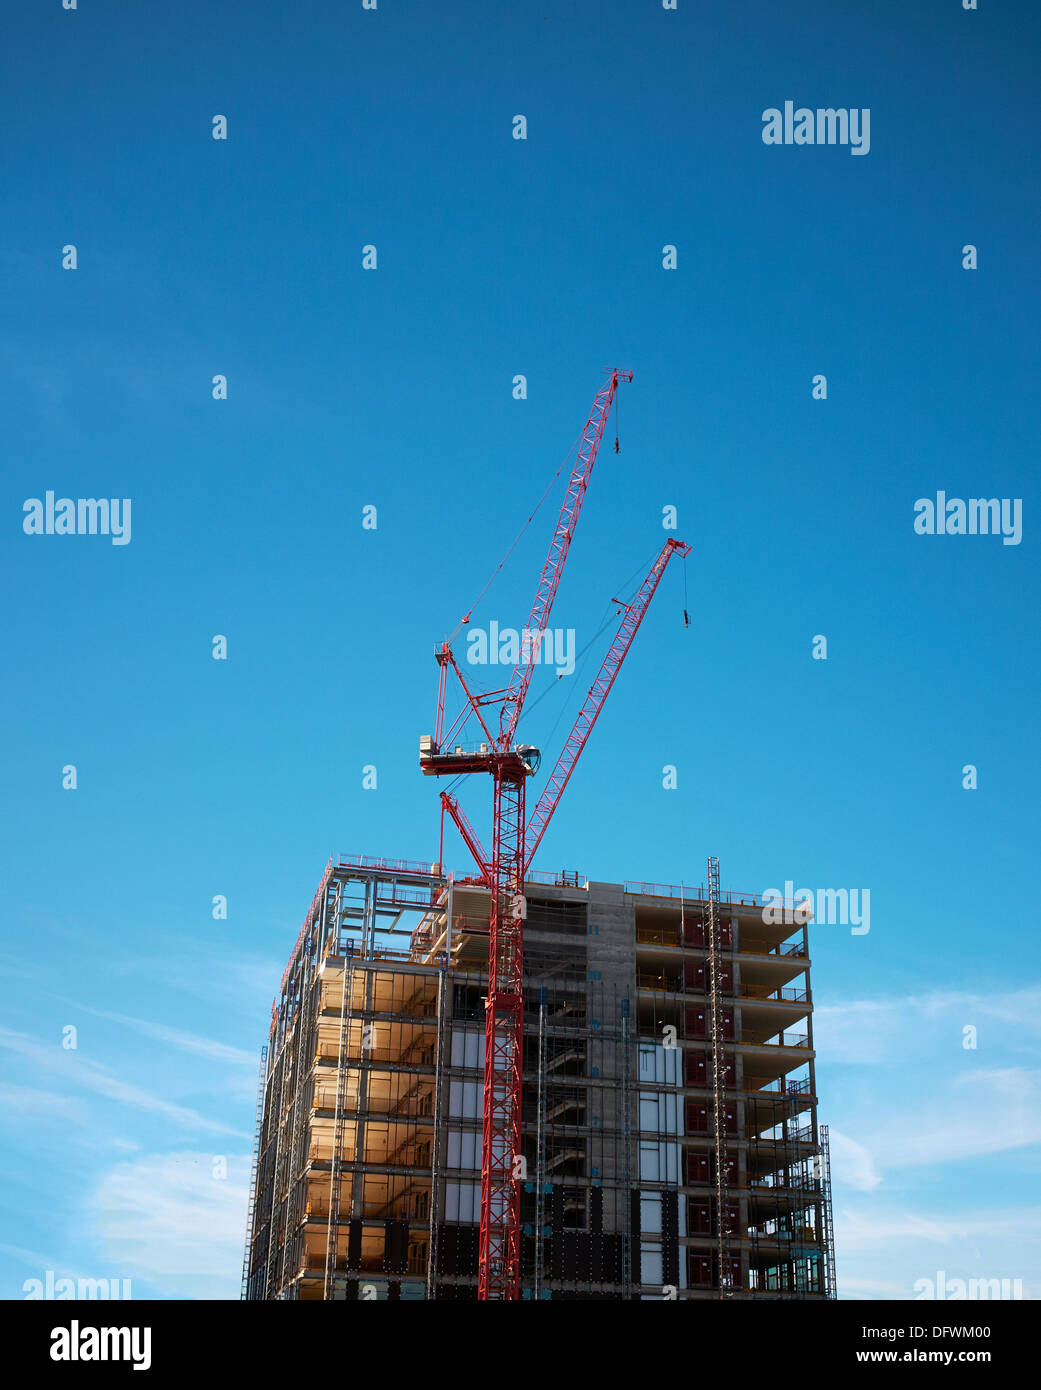 Construction site - New Builds - New Homes - New Offices. - Stock Image